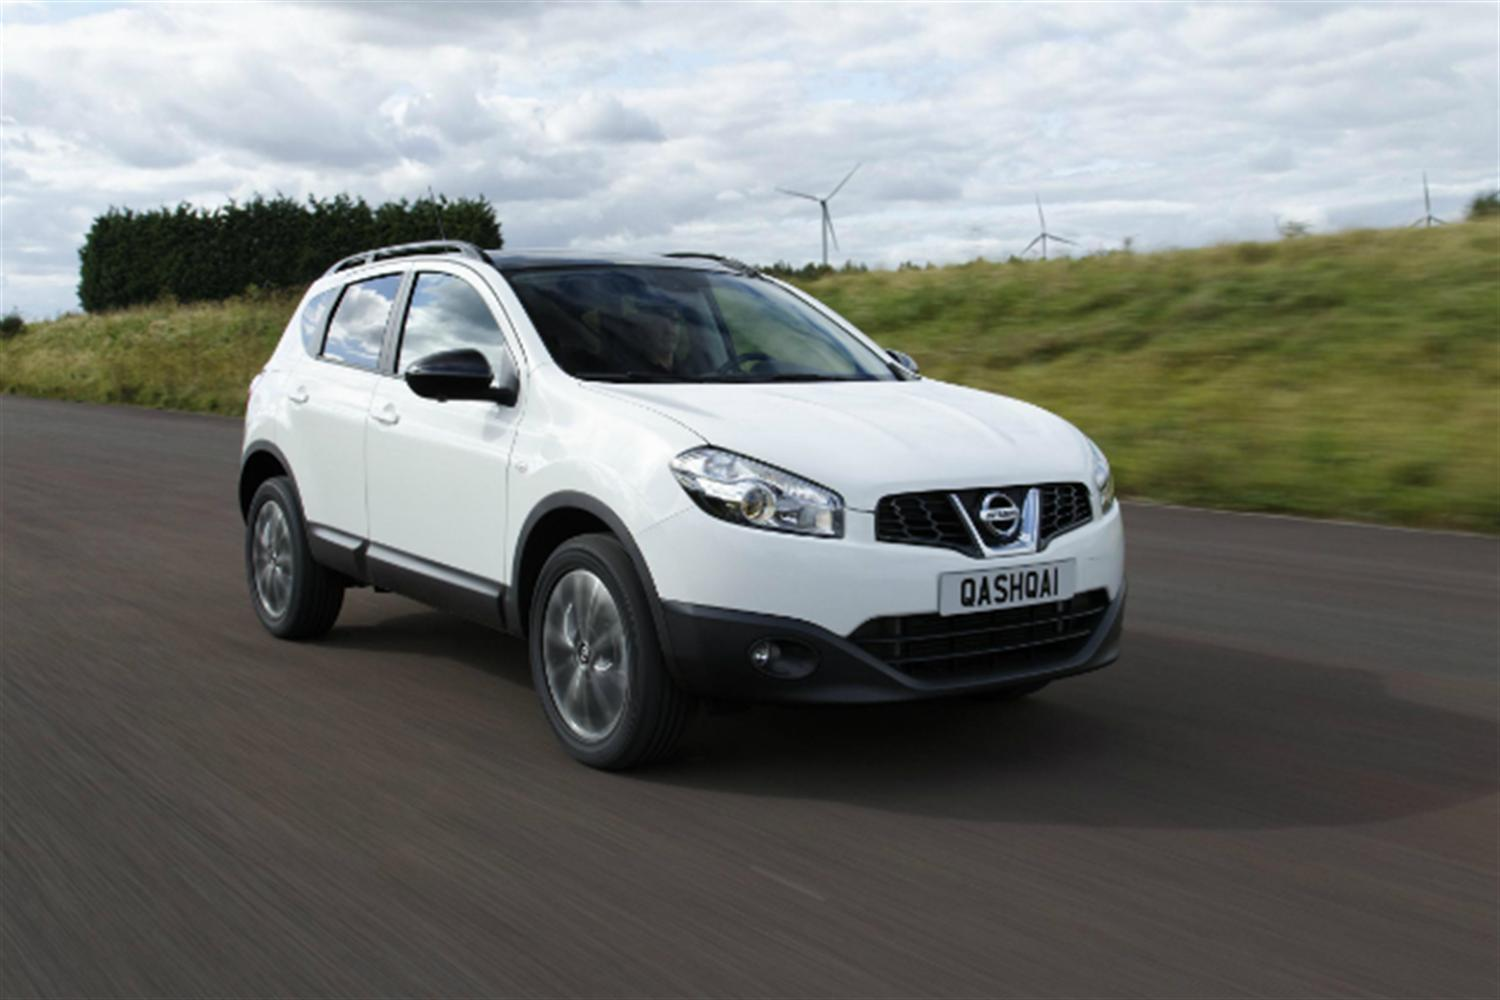 New Nissan Qashqai 360 Launched